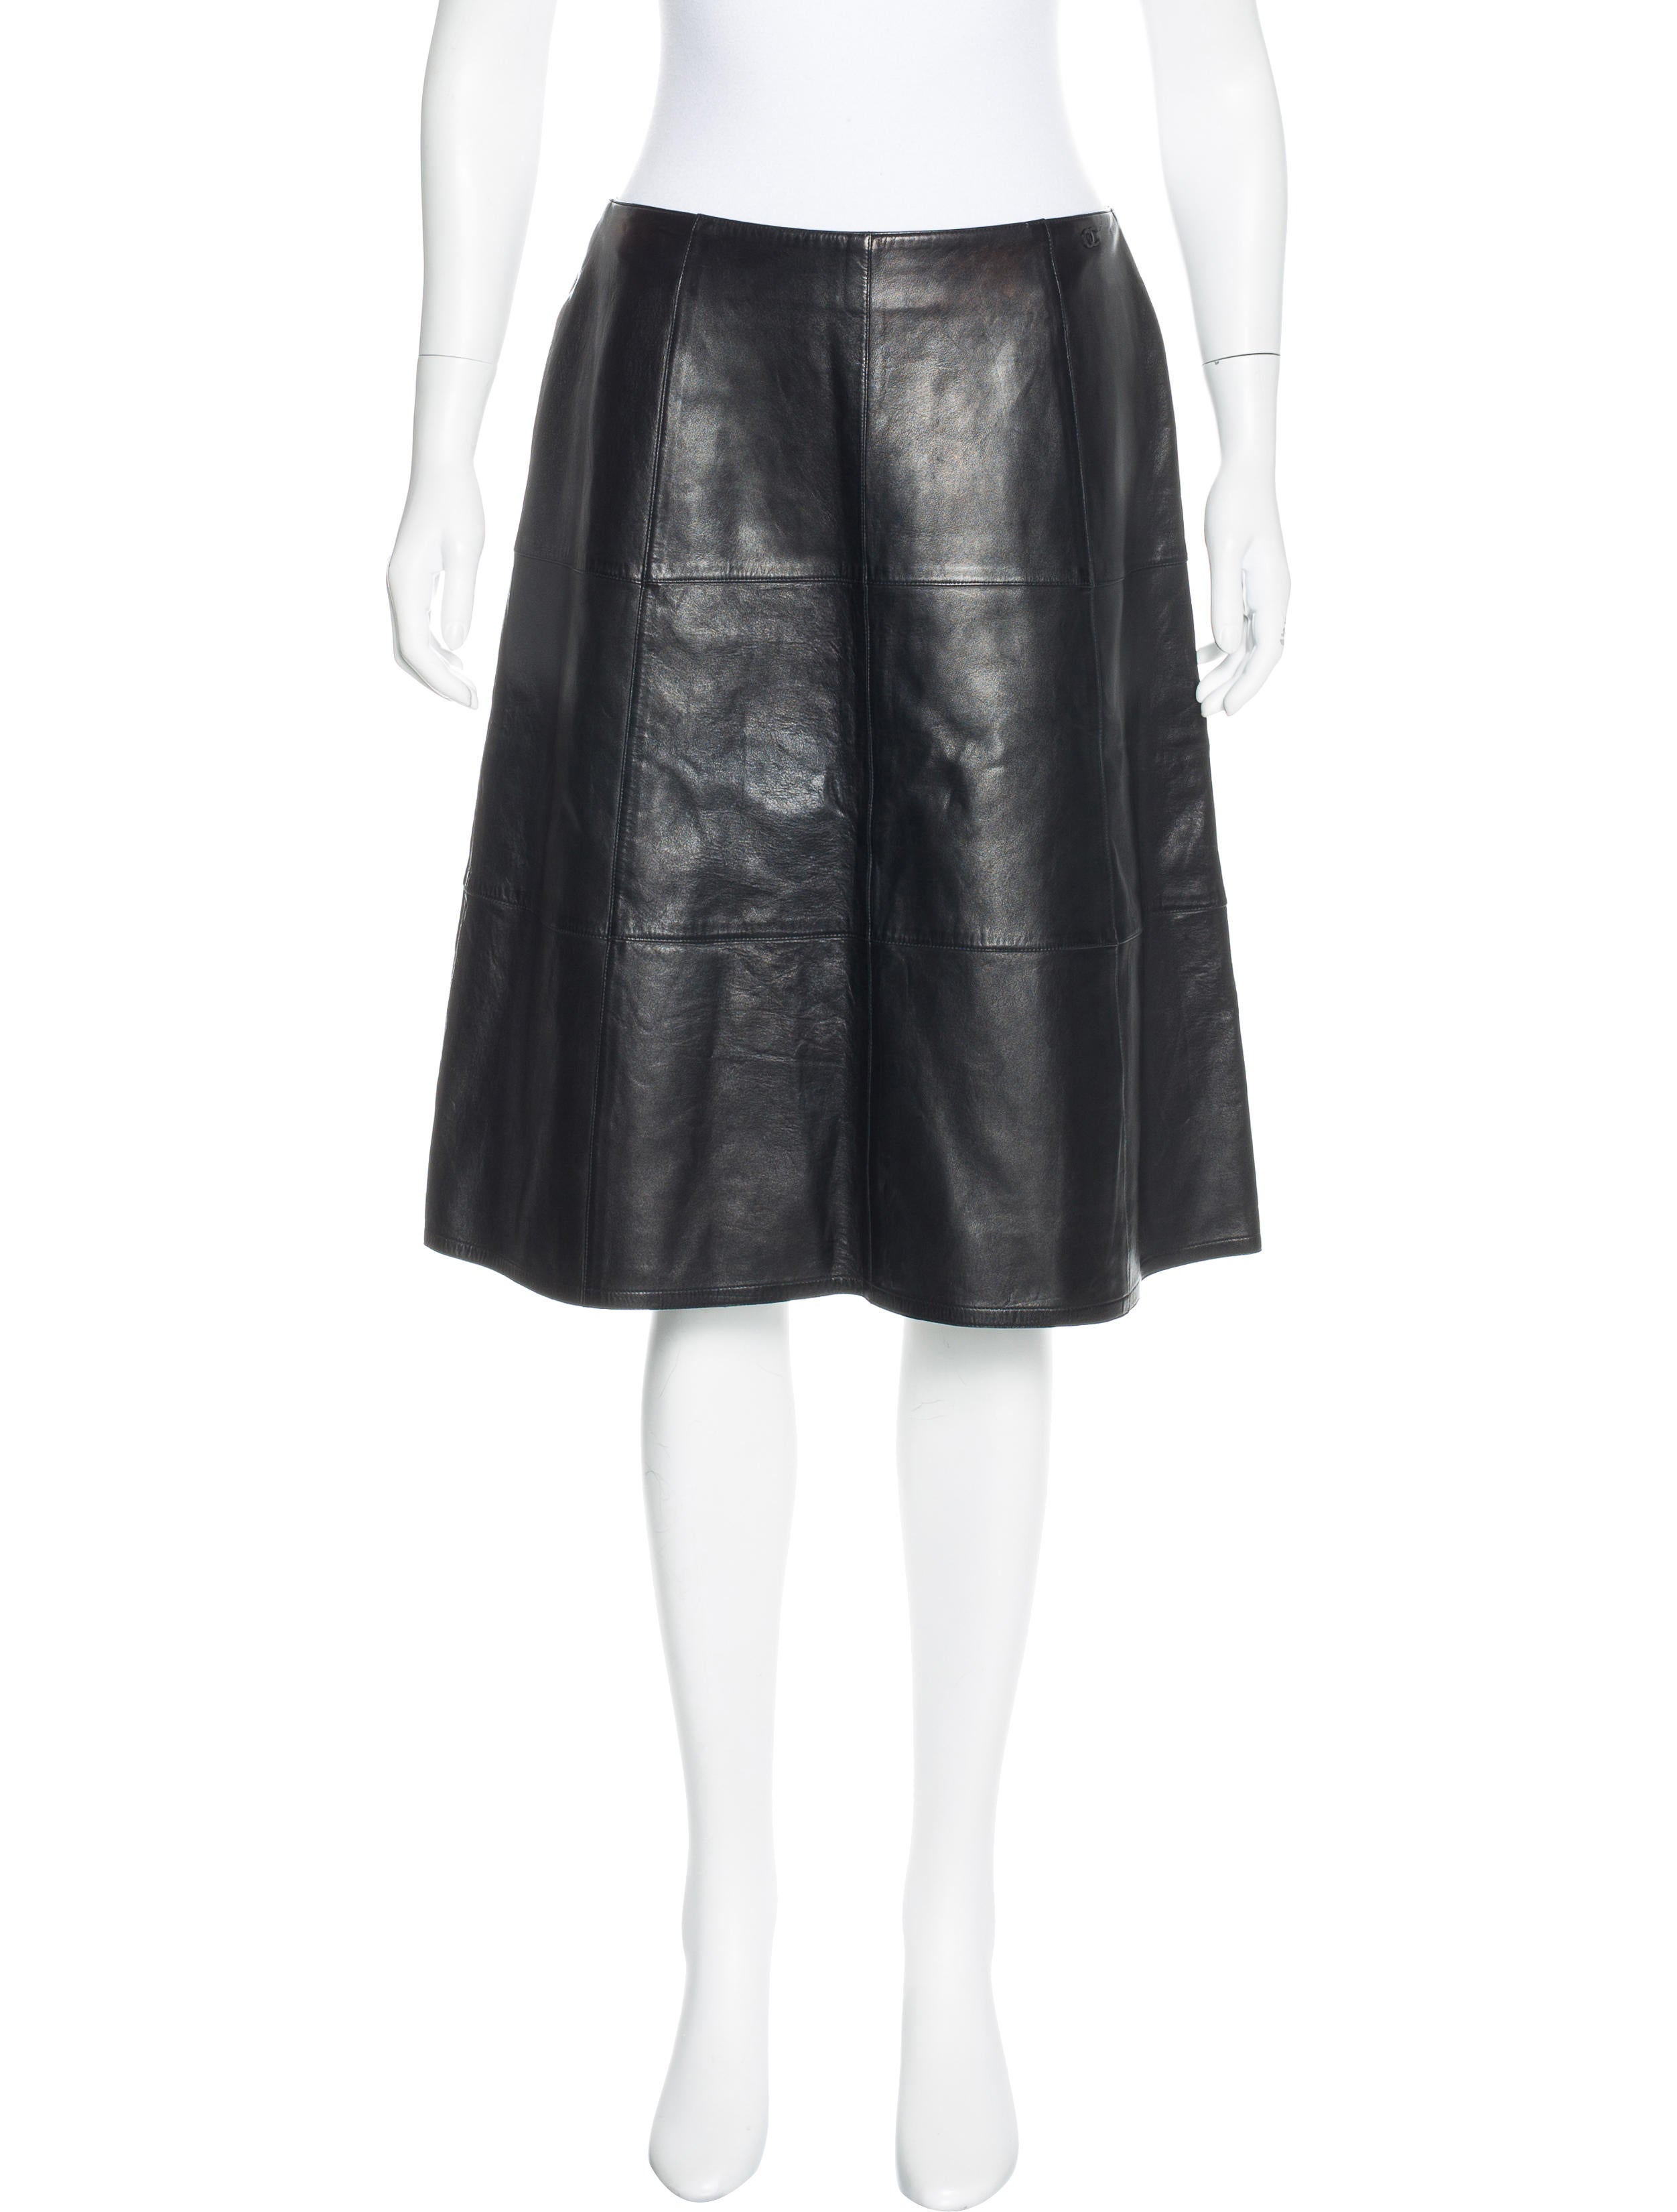 Chanel Quilted Leather Skirt - Clothing - CHA180421 | The RealReal : quilted leather skirt - Adamdwight.com